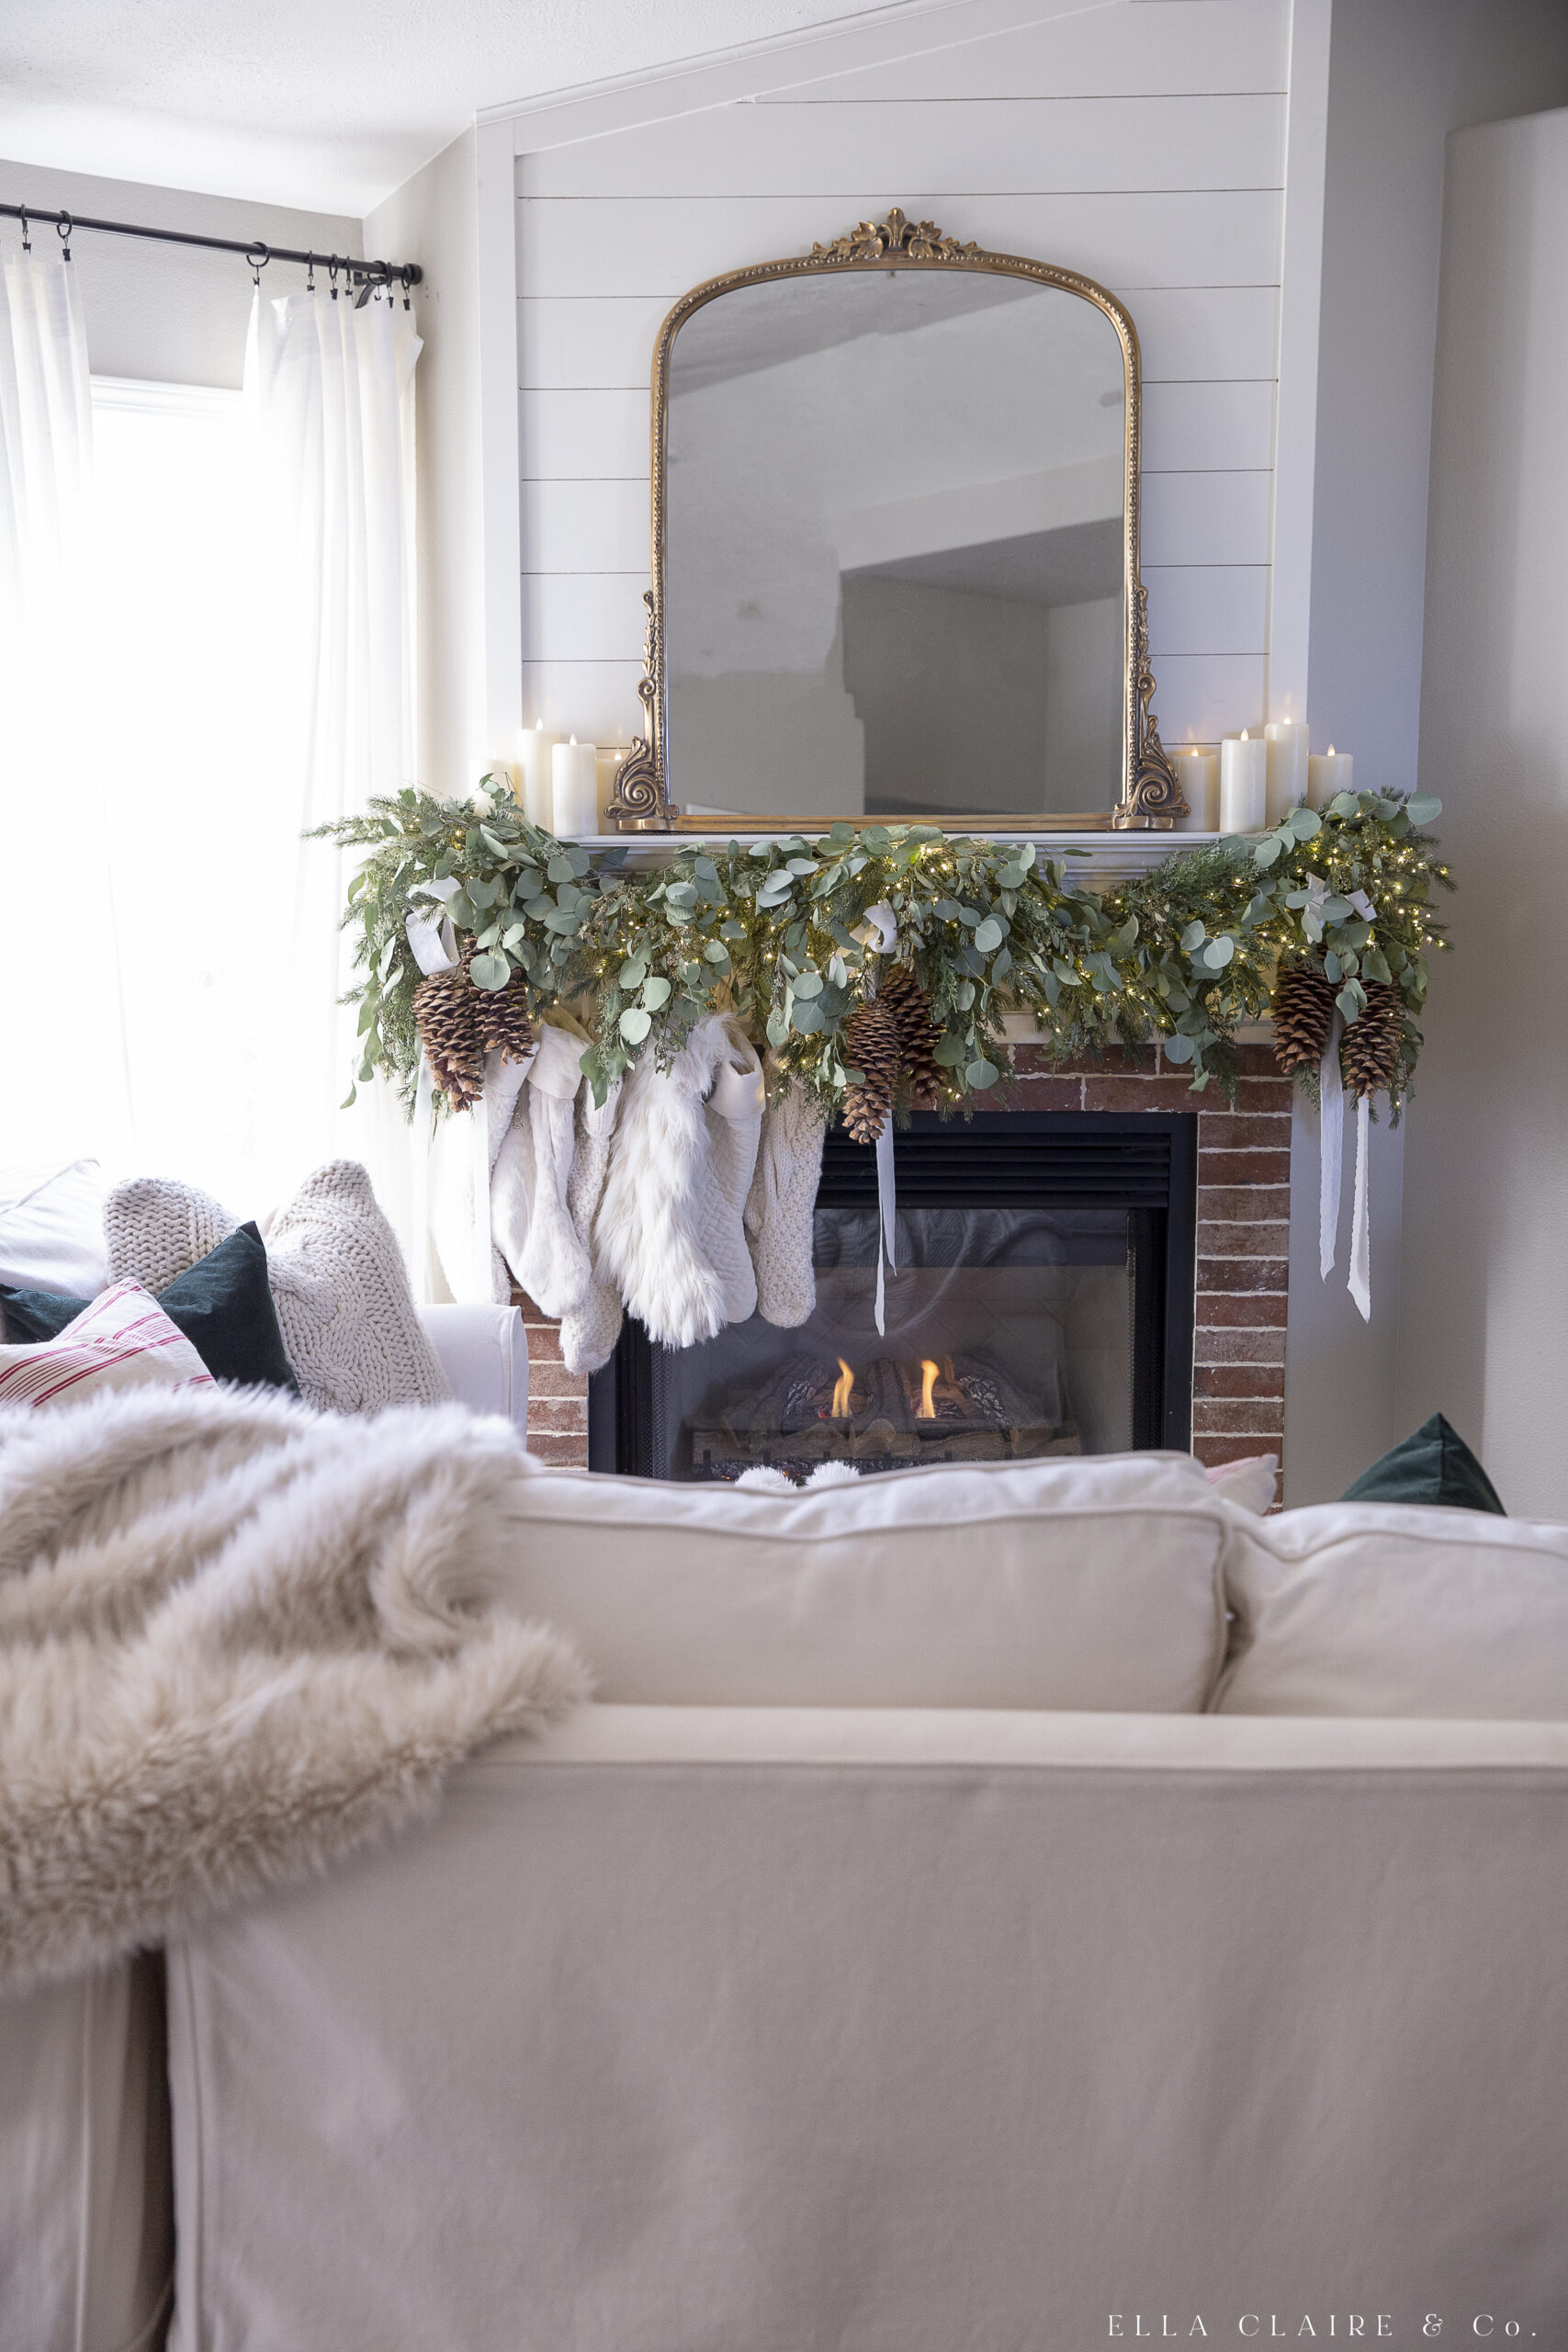 fireplace with mantel garland and stockings